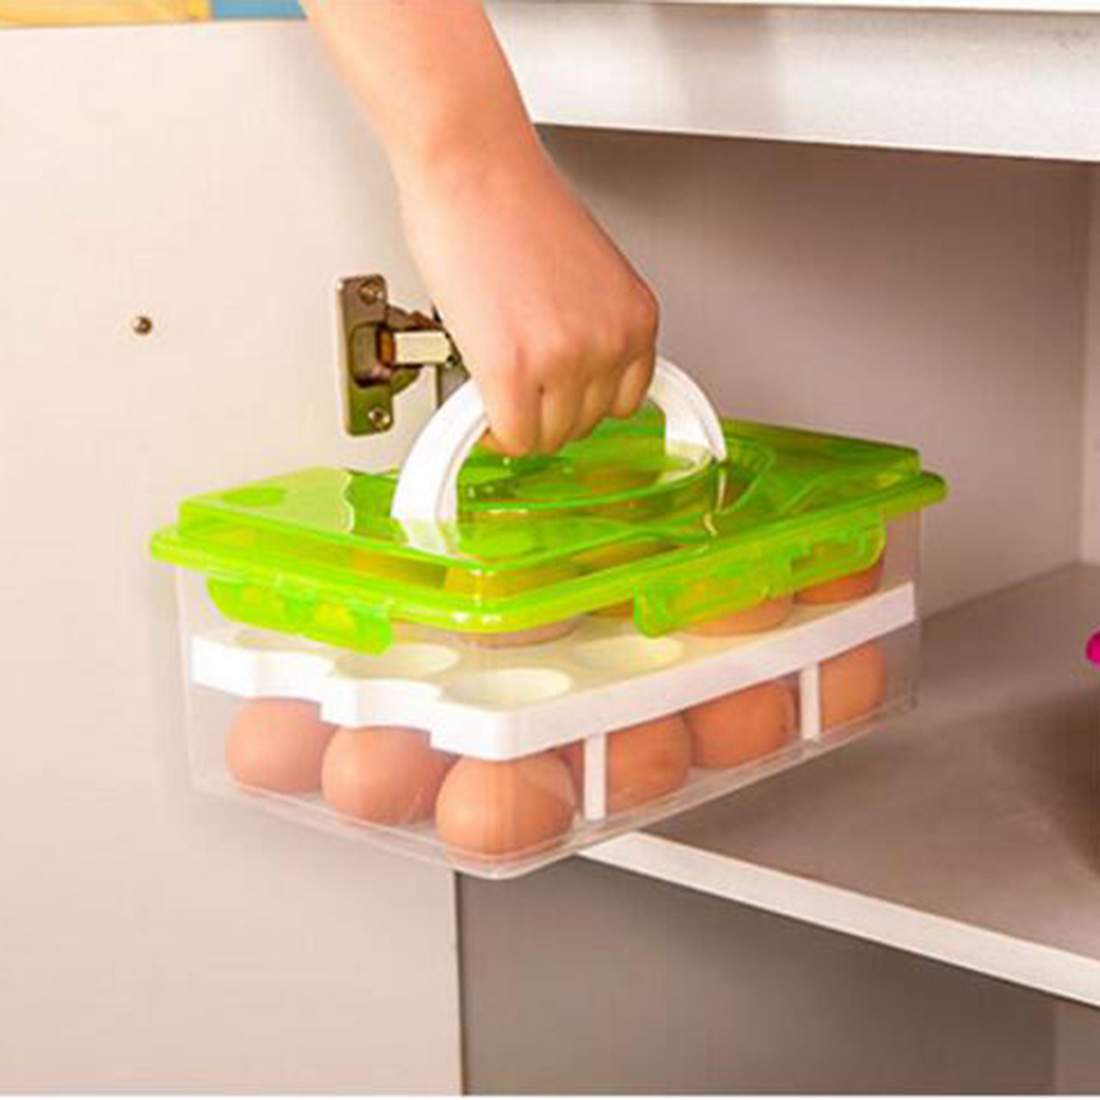 24 Grids Convenient Egg Food Storage Box Kitchen Refrigerator Anti-Collision Tray Container Accessories Supplies Cases